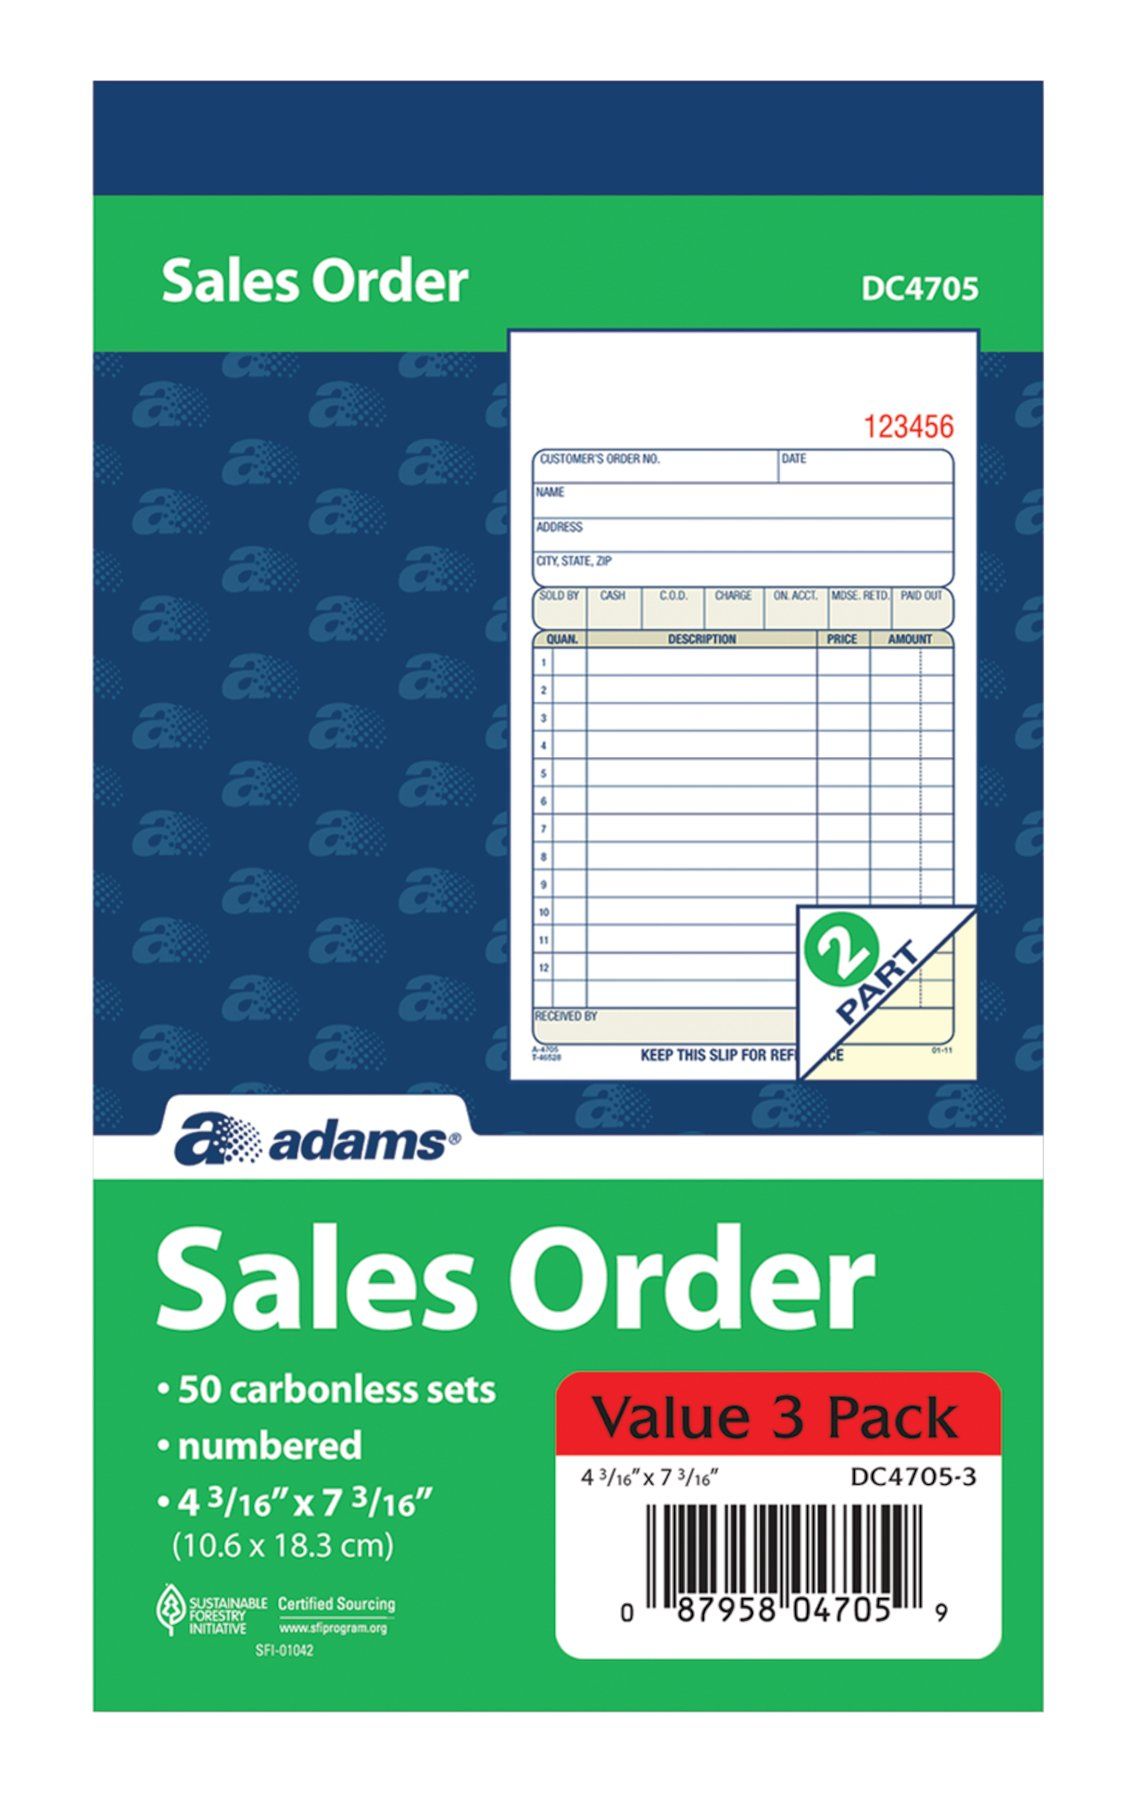 Adams Sales Order Books, 2-Part, Carbonless, White/Canary, 4-3/16'' x 7-3/16'', Bound Wraparound Cover, 50 Sets per Book, 3 Pack (DC4705-3)